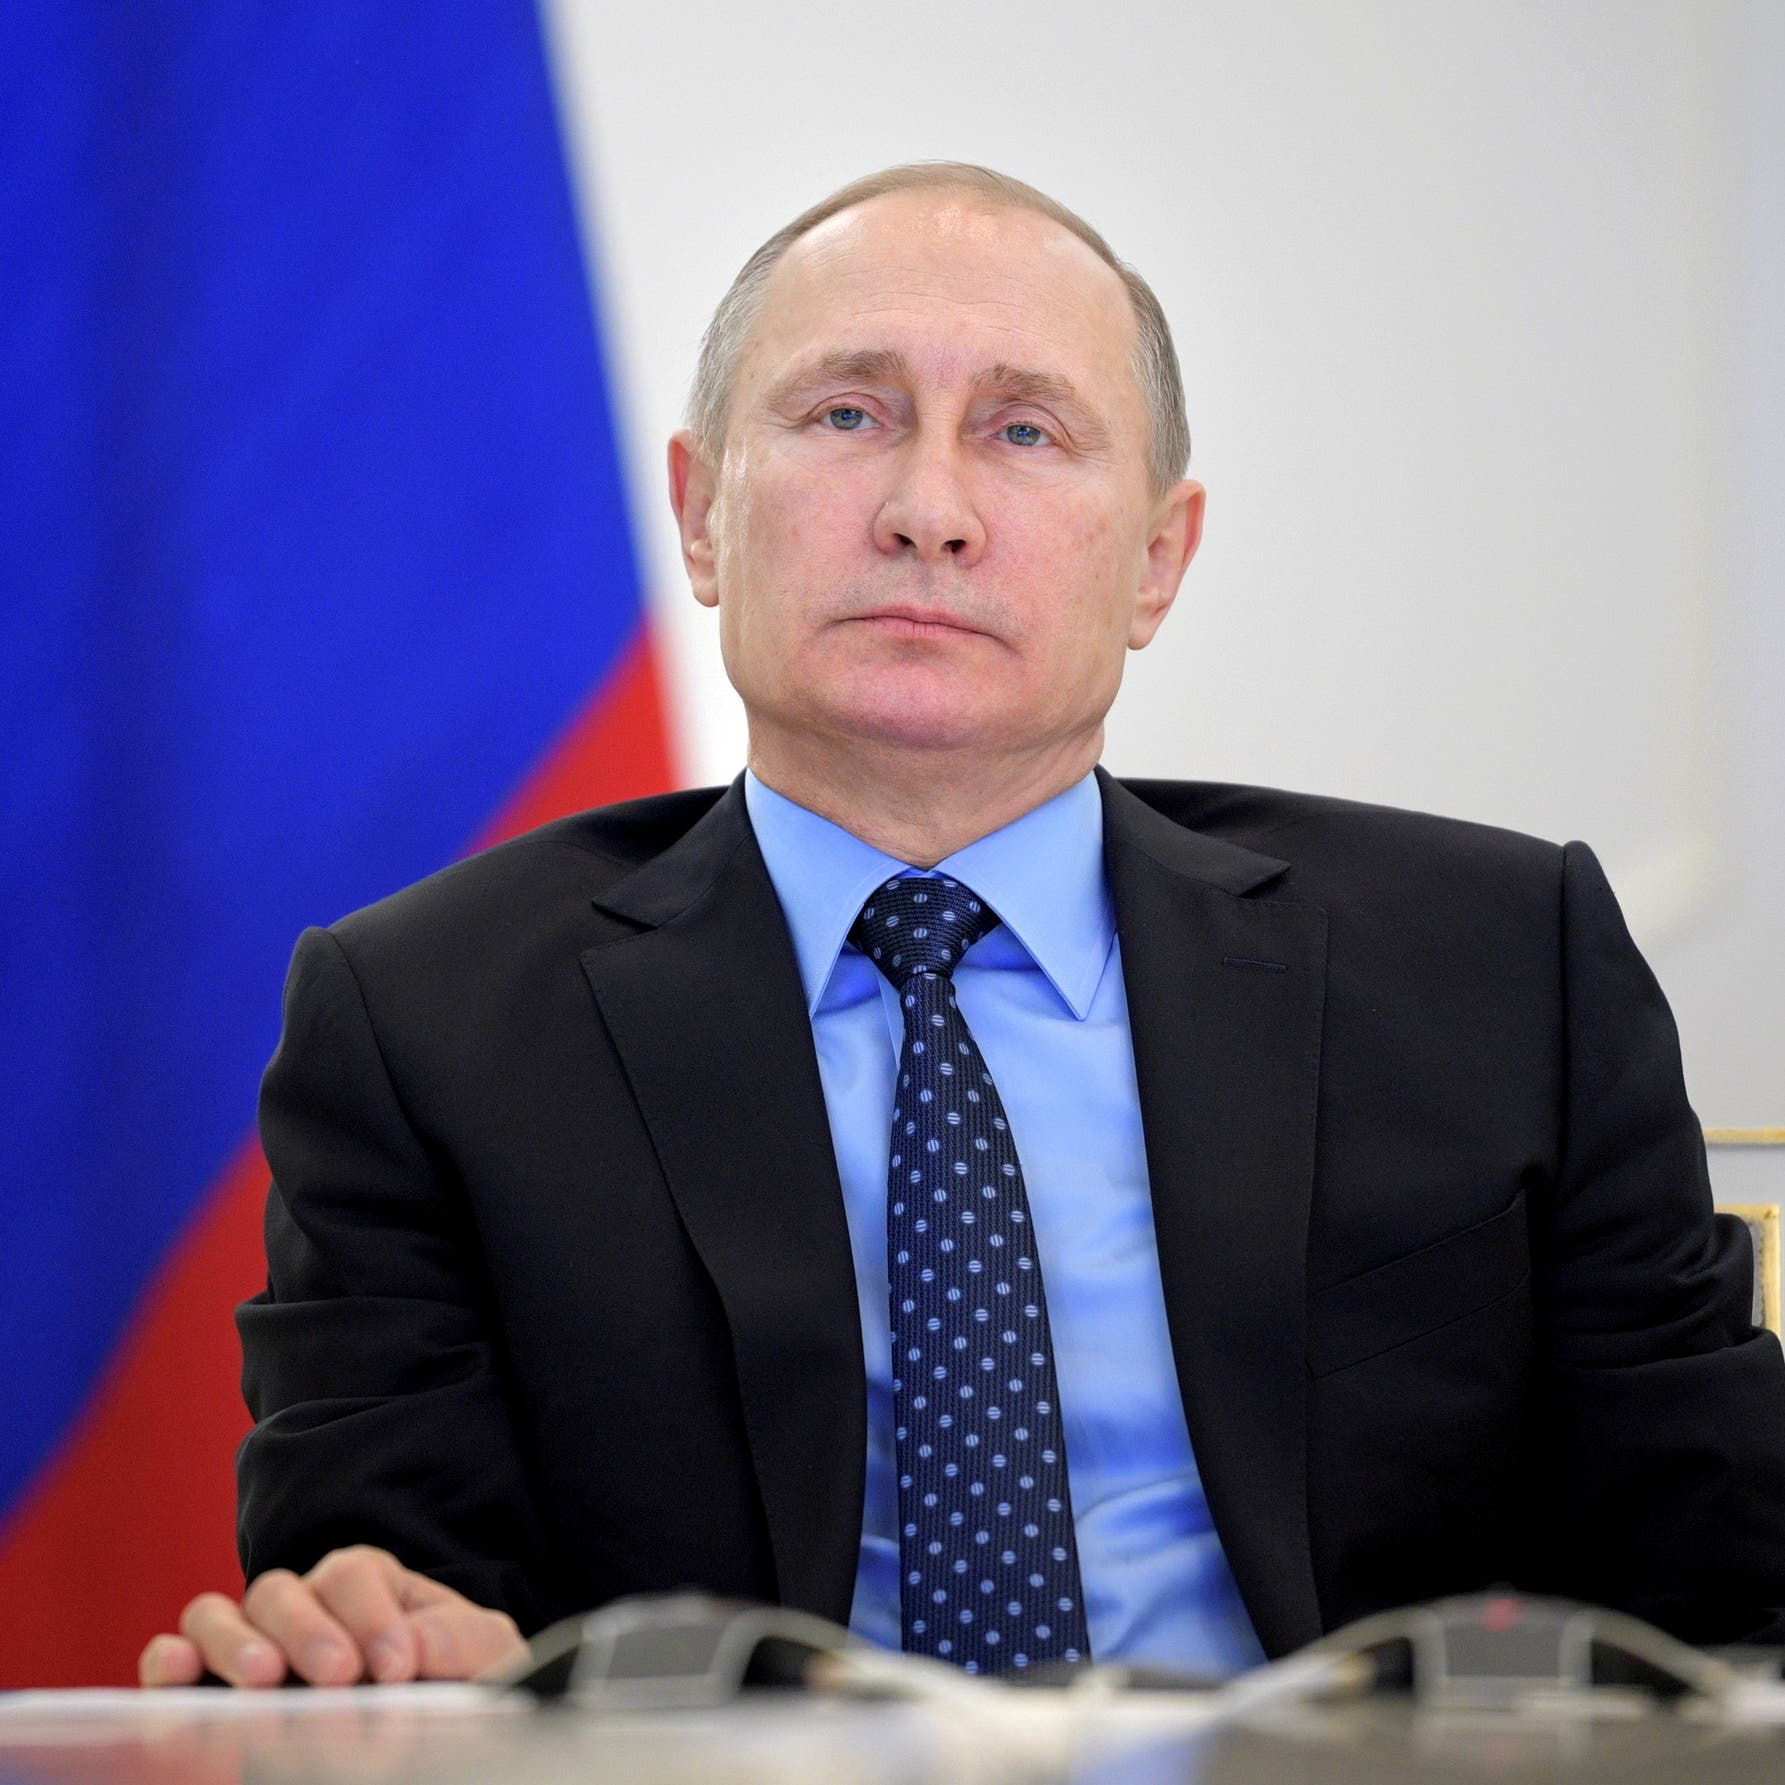 Russia's pro-Putin party wins parliamentary vote, exit polls show